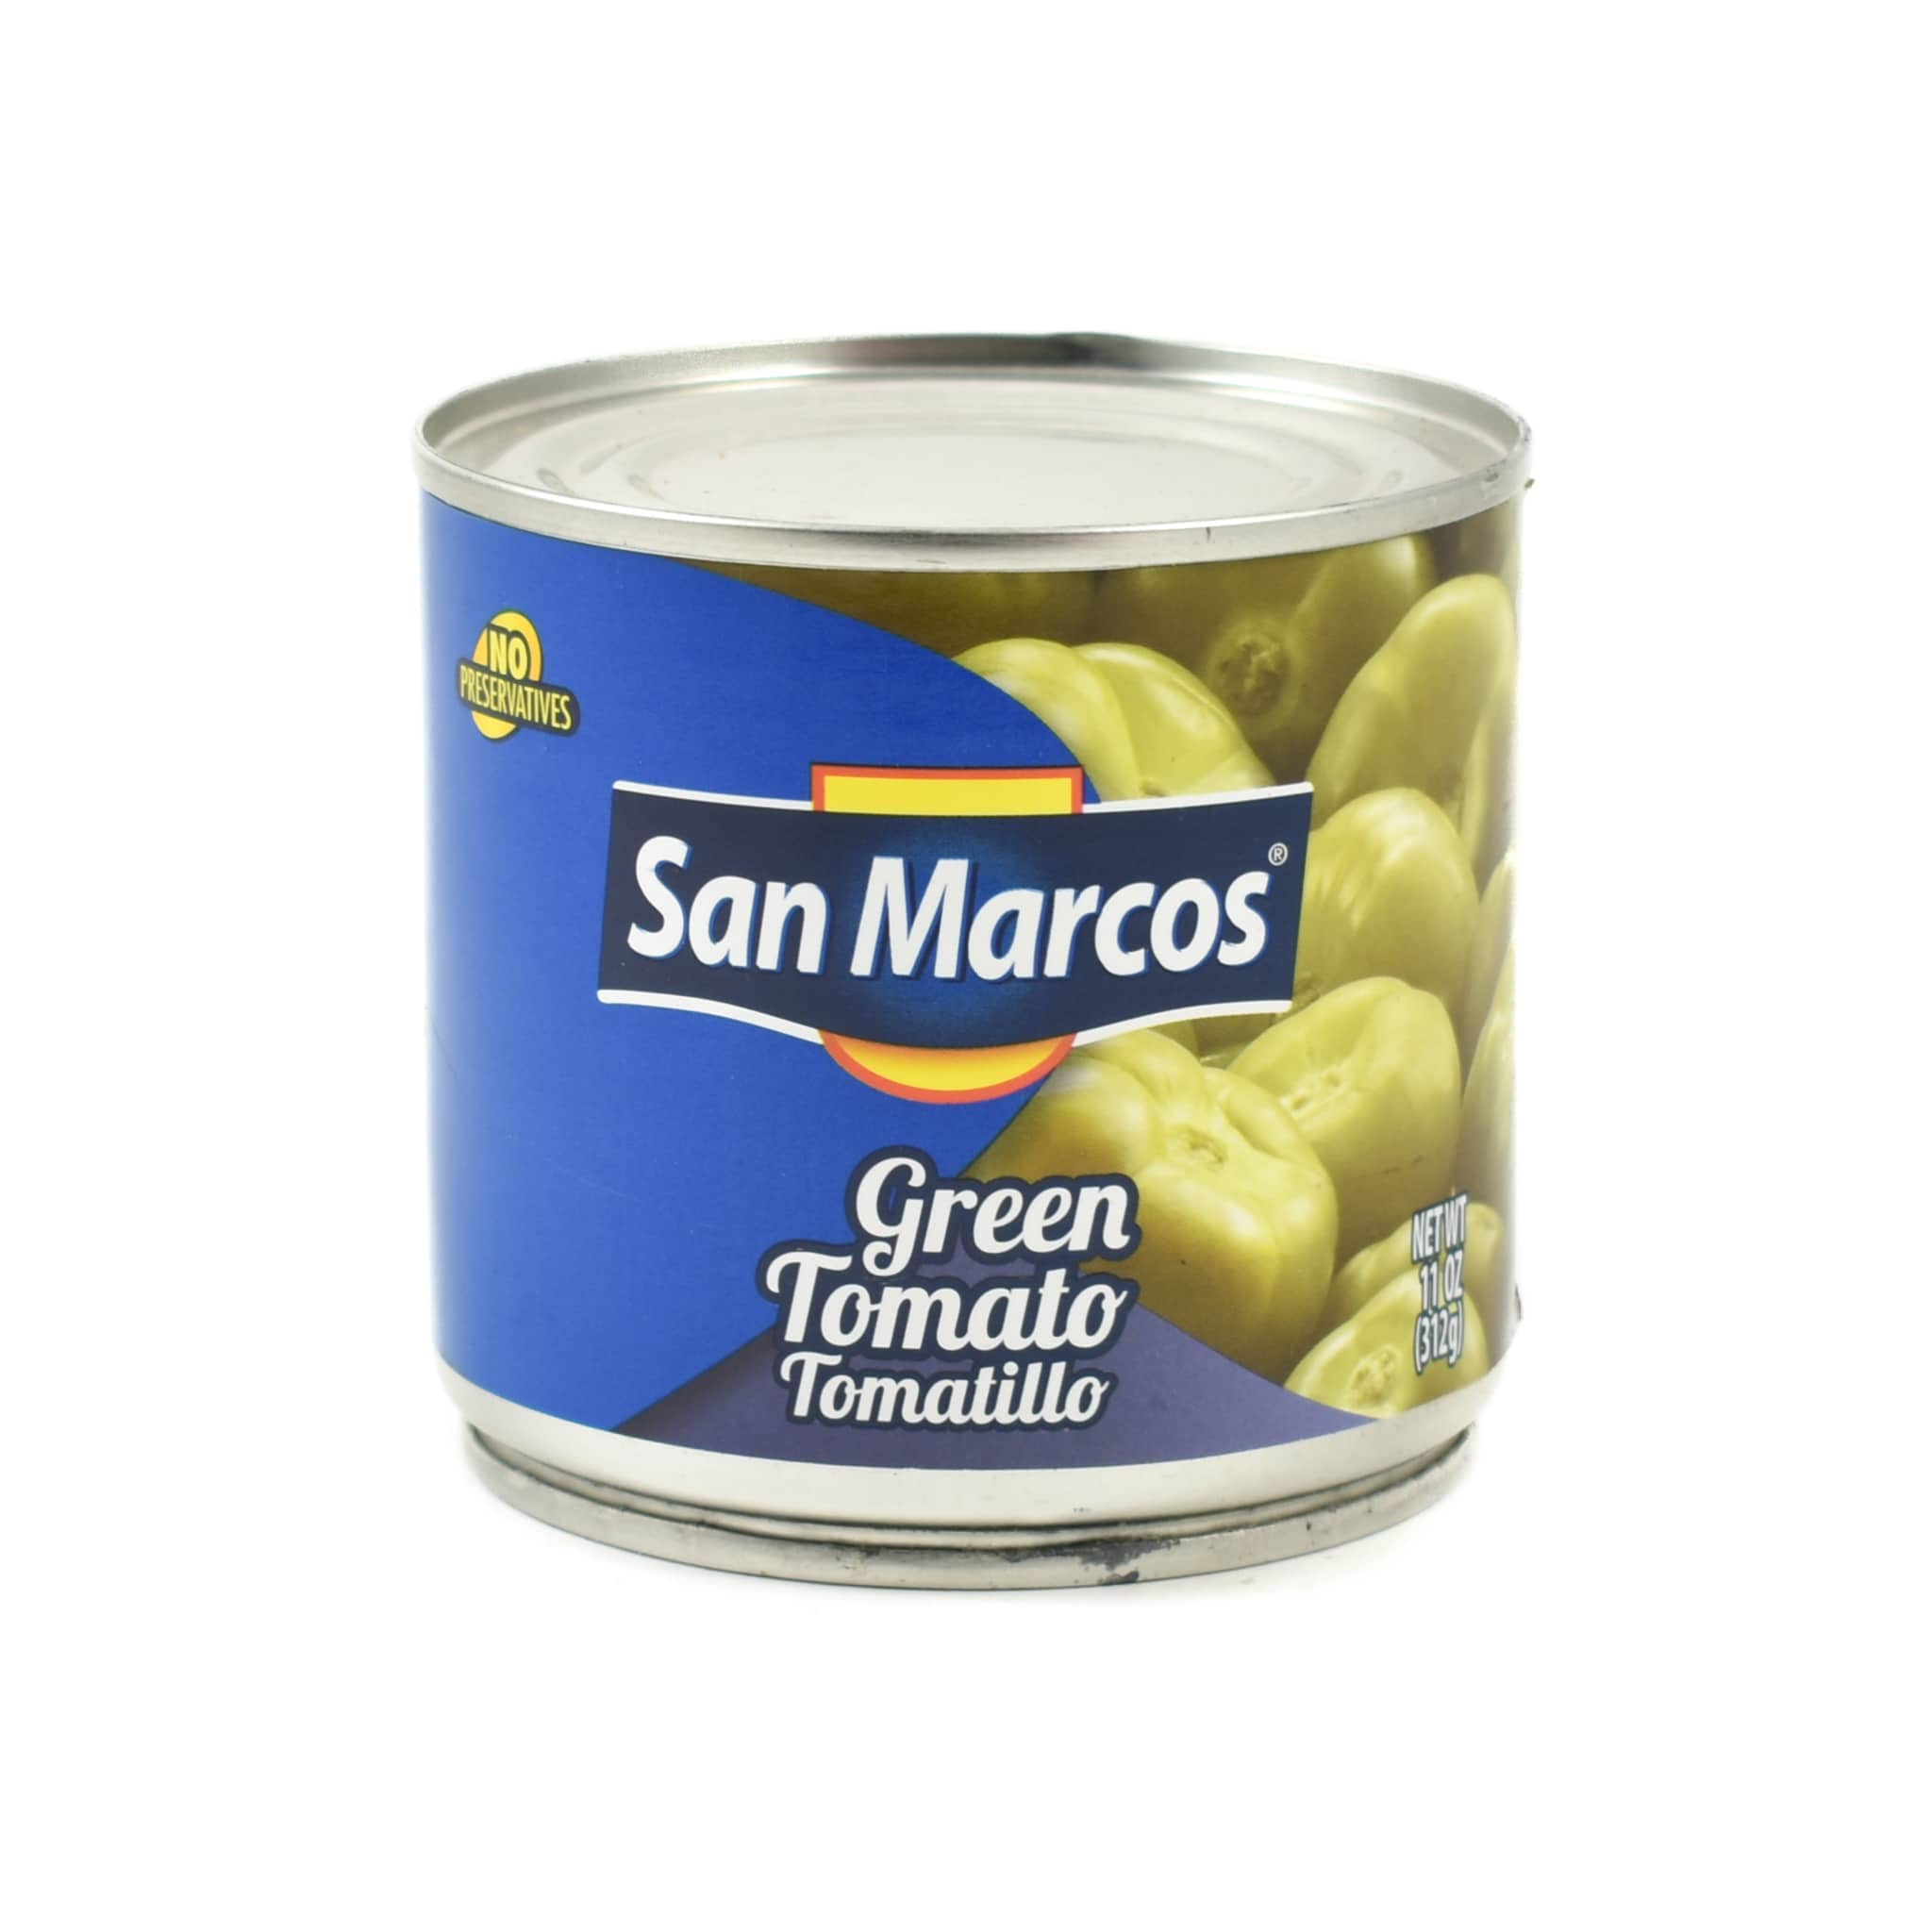 San Marcos Whole Tomatillos 312g Mexican Food and Cooking